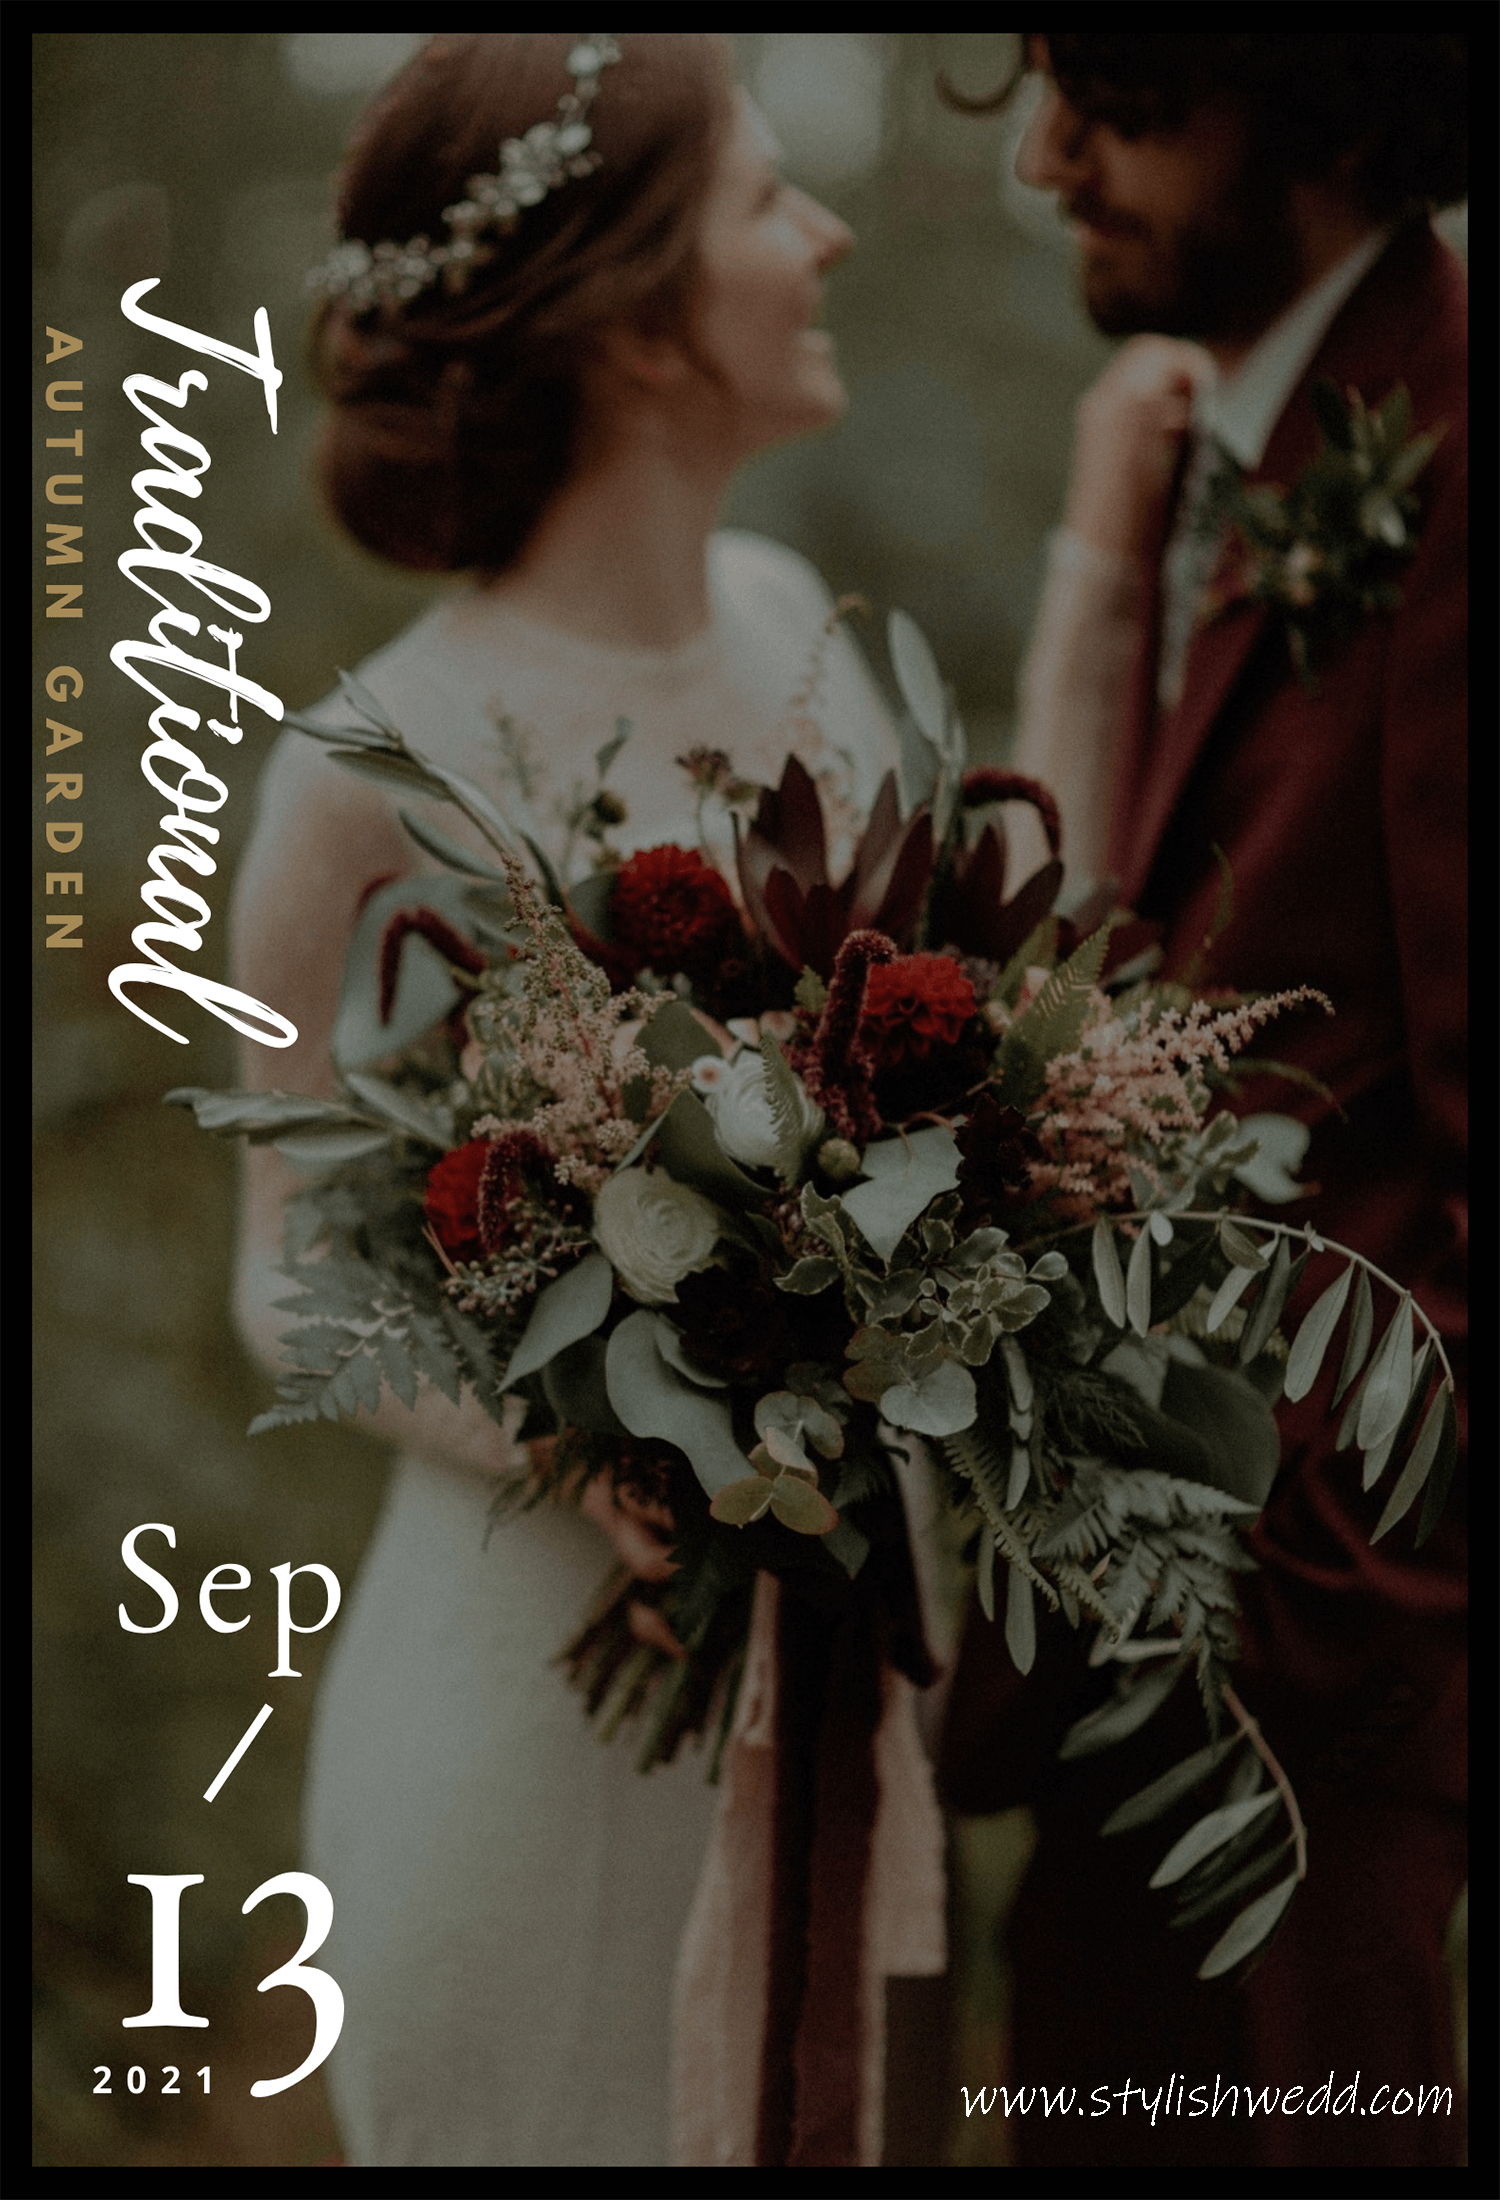 atmospheric traditional autumn wedding bouquets in shades of dark red & burgundy